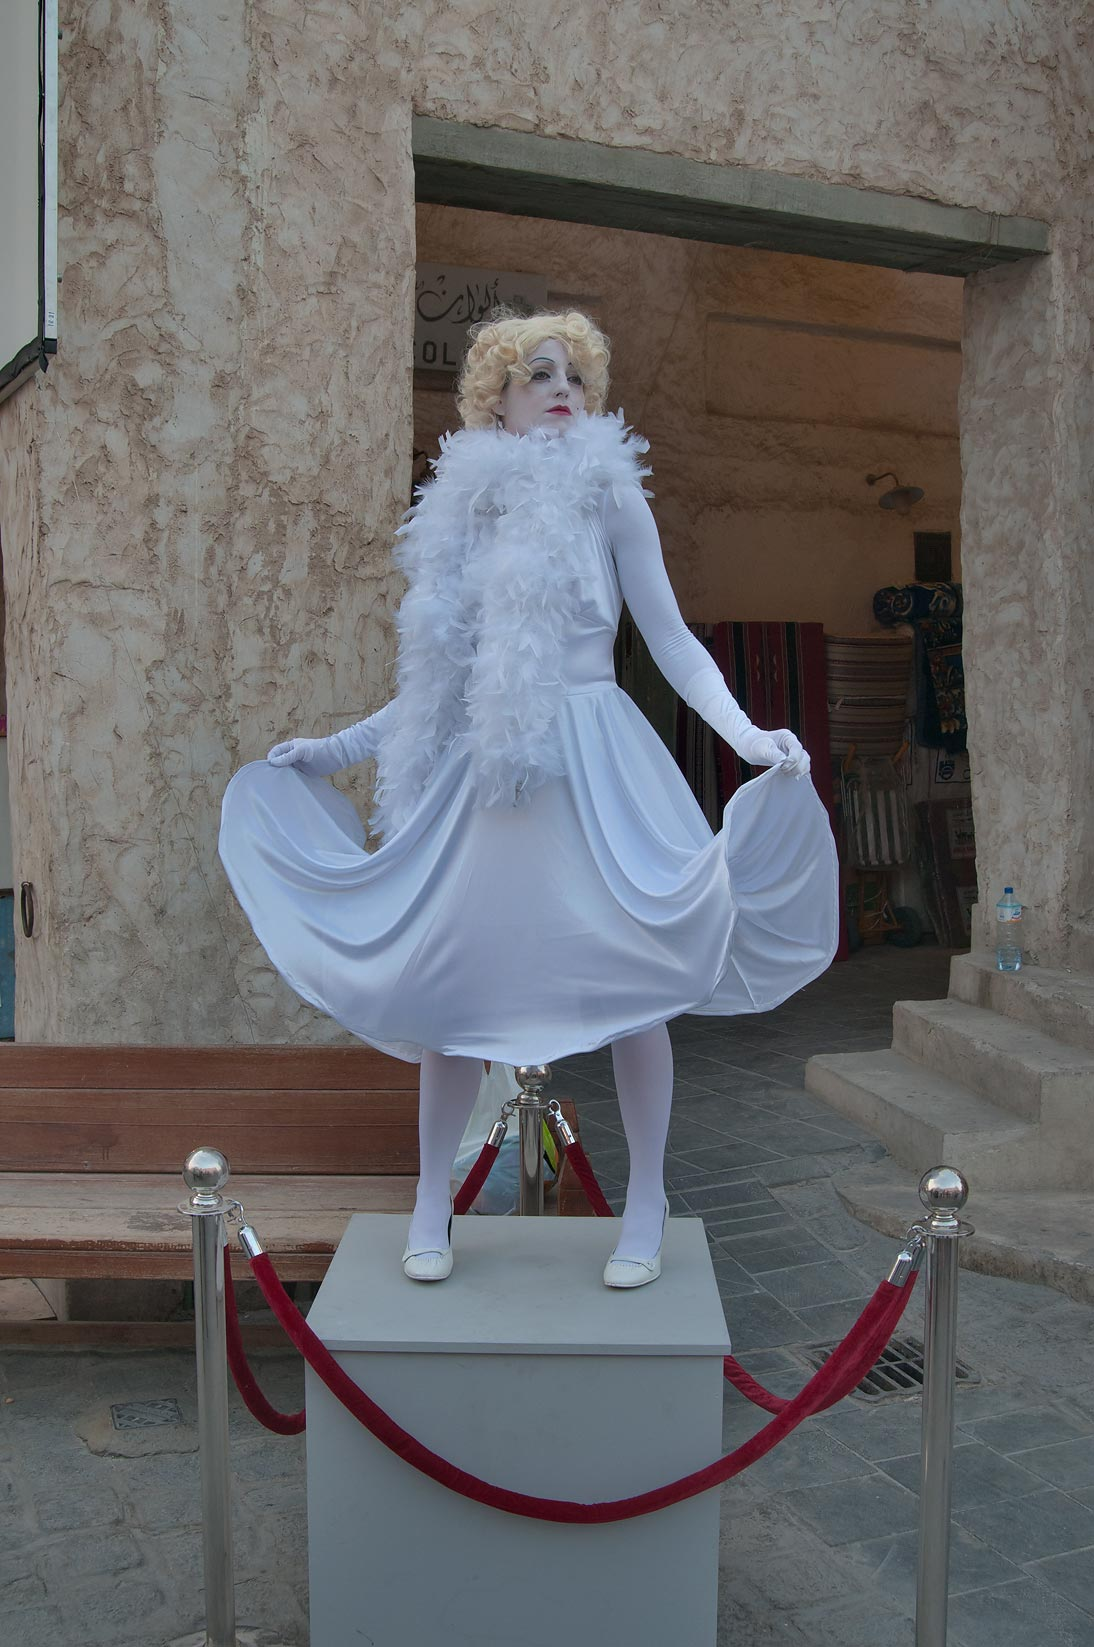 Live glamour human statue in Souq Waqif (Old Market). Doha, Qatar